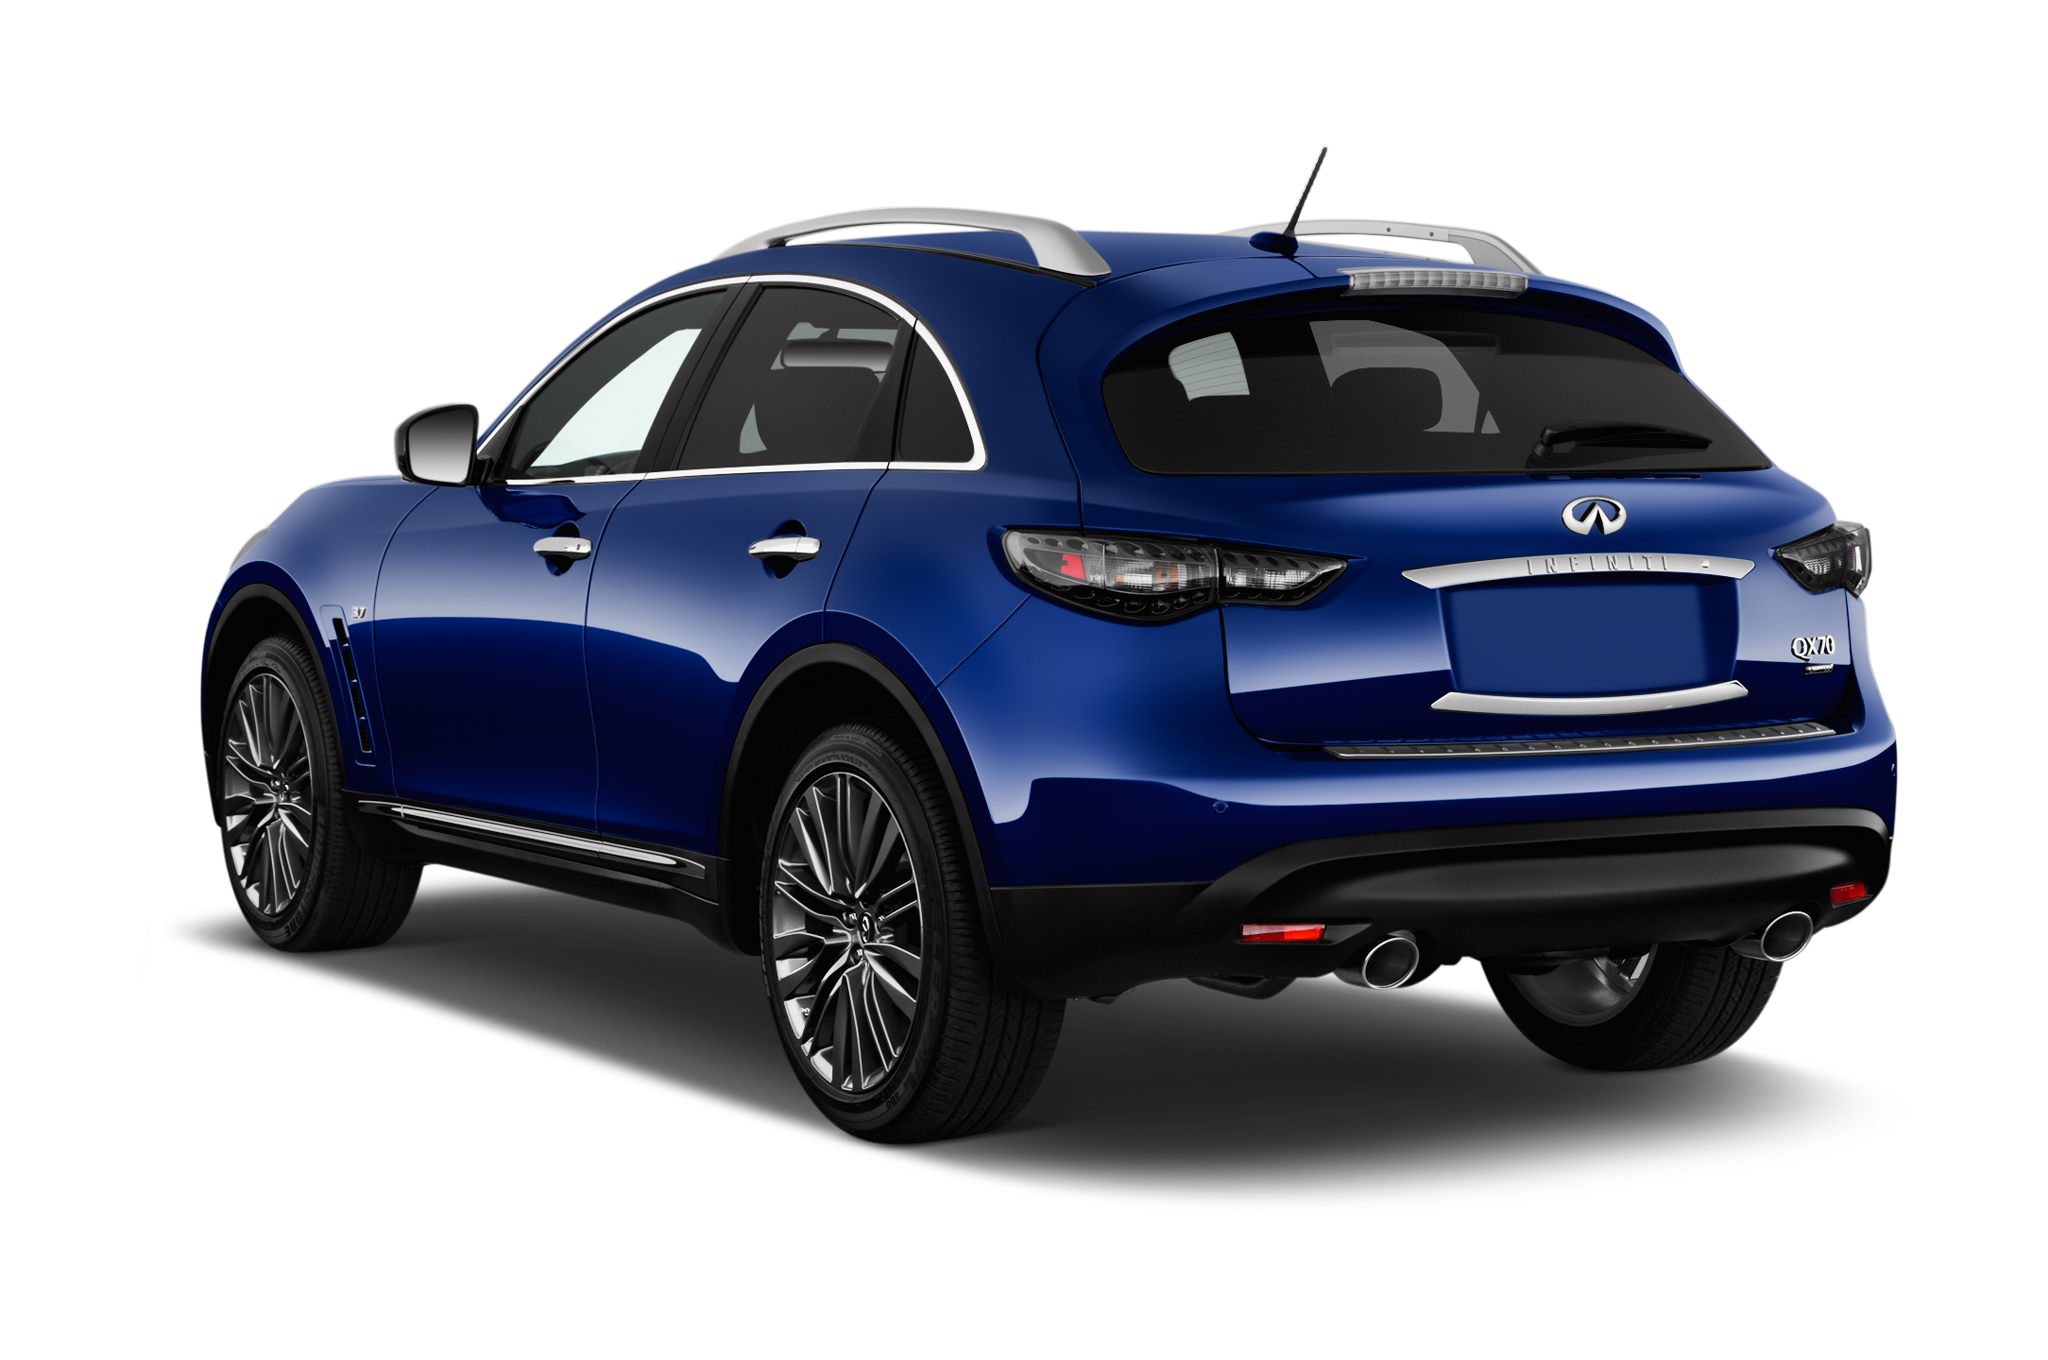 2017 infiniti qx70 limited debuts at 2016 new york auto show. Black Bedroom Furniture Sets. Home Design Ideas